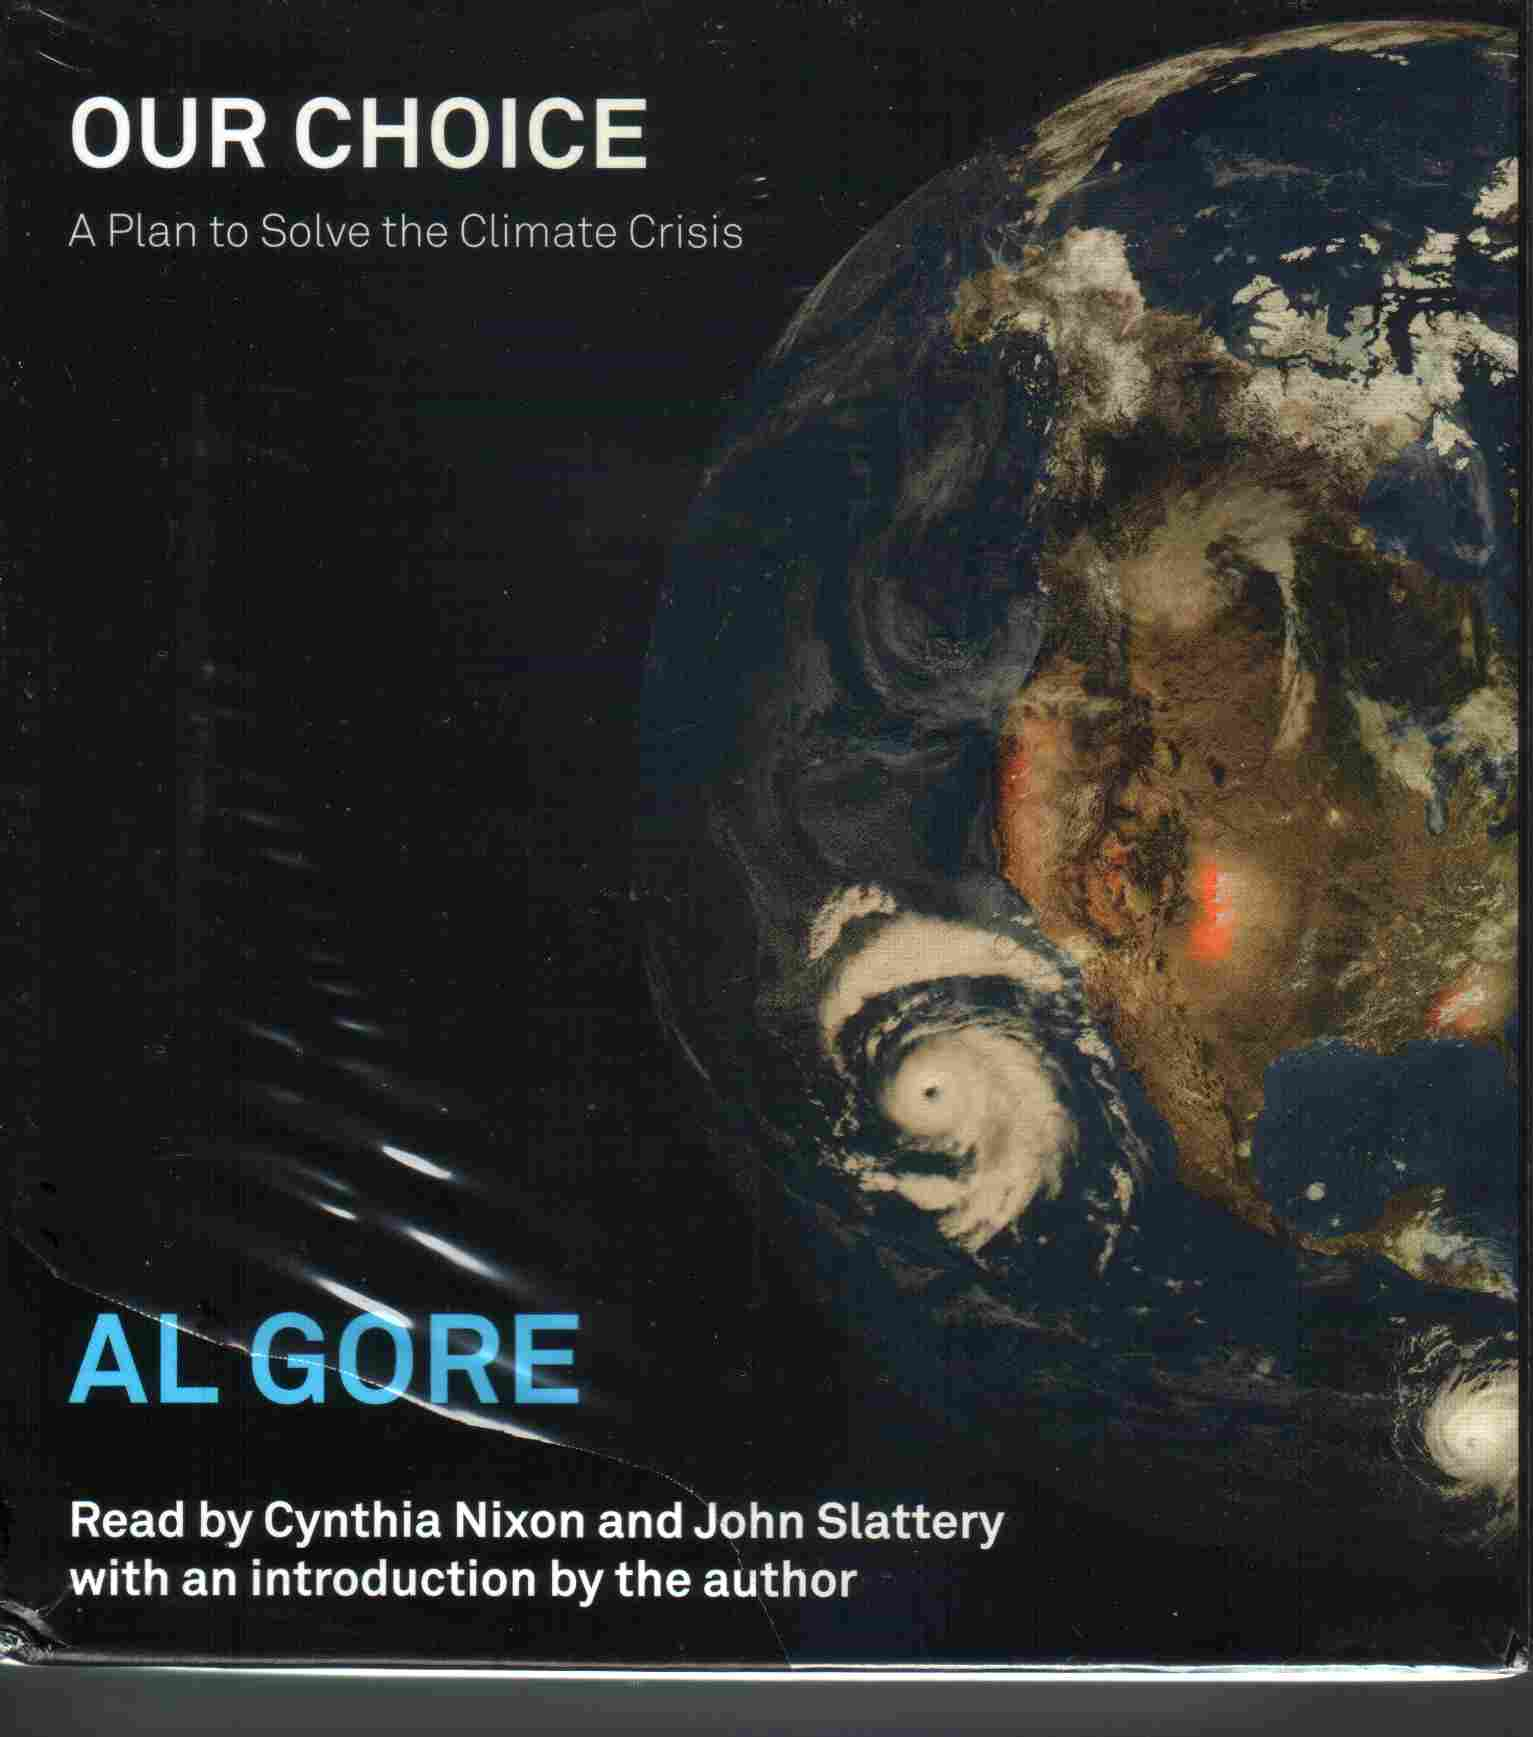 OUR CHOICE by Al Gore